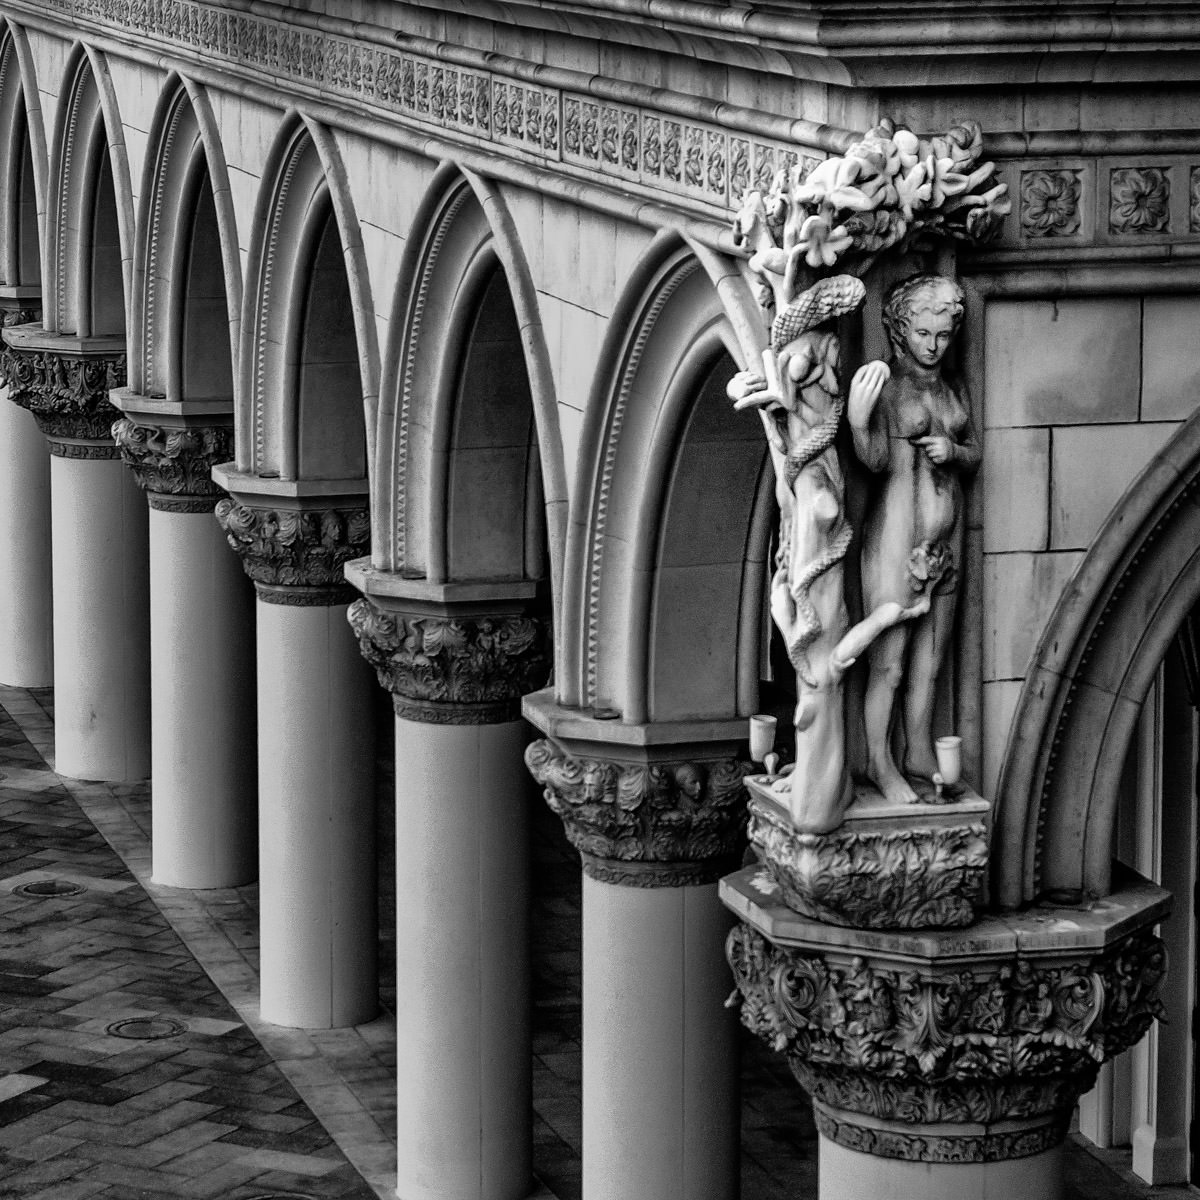 Statues and columns on the exterior of The Venetian, Las Vegas.